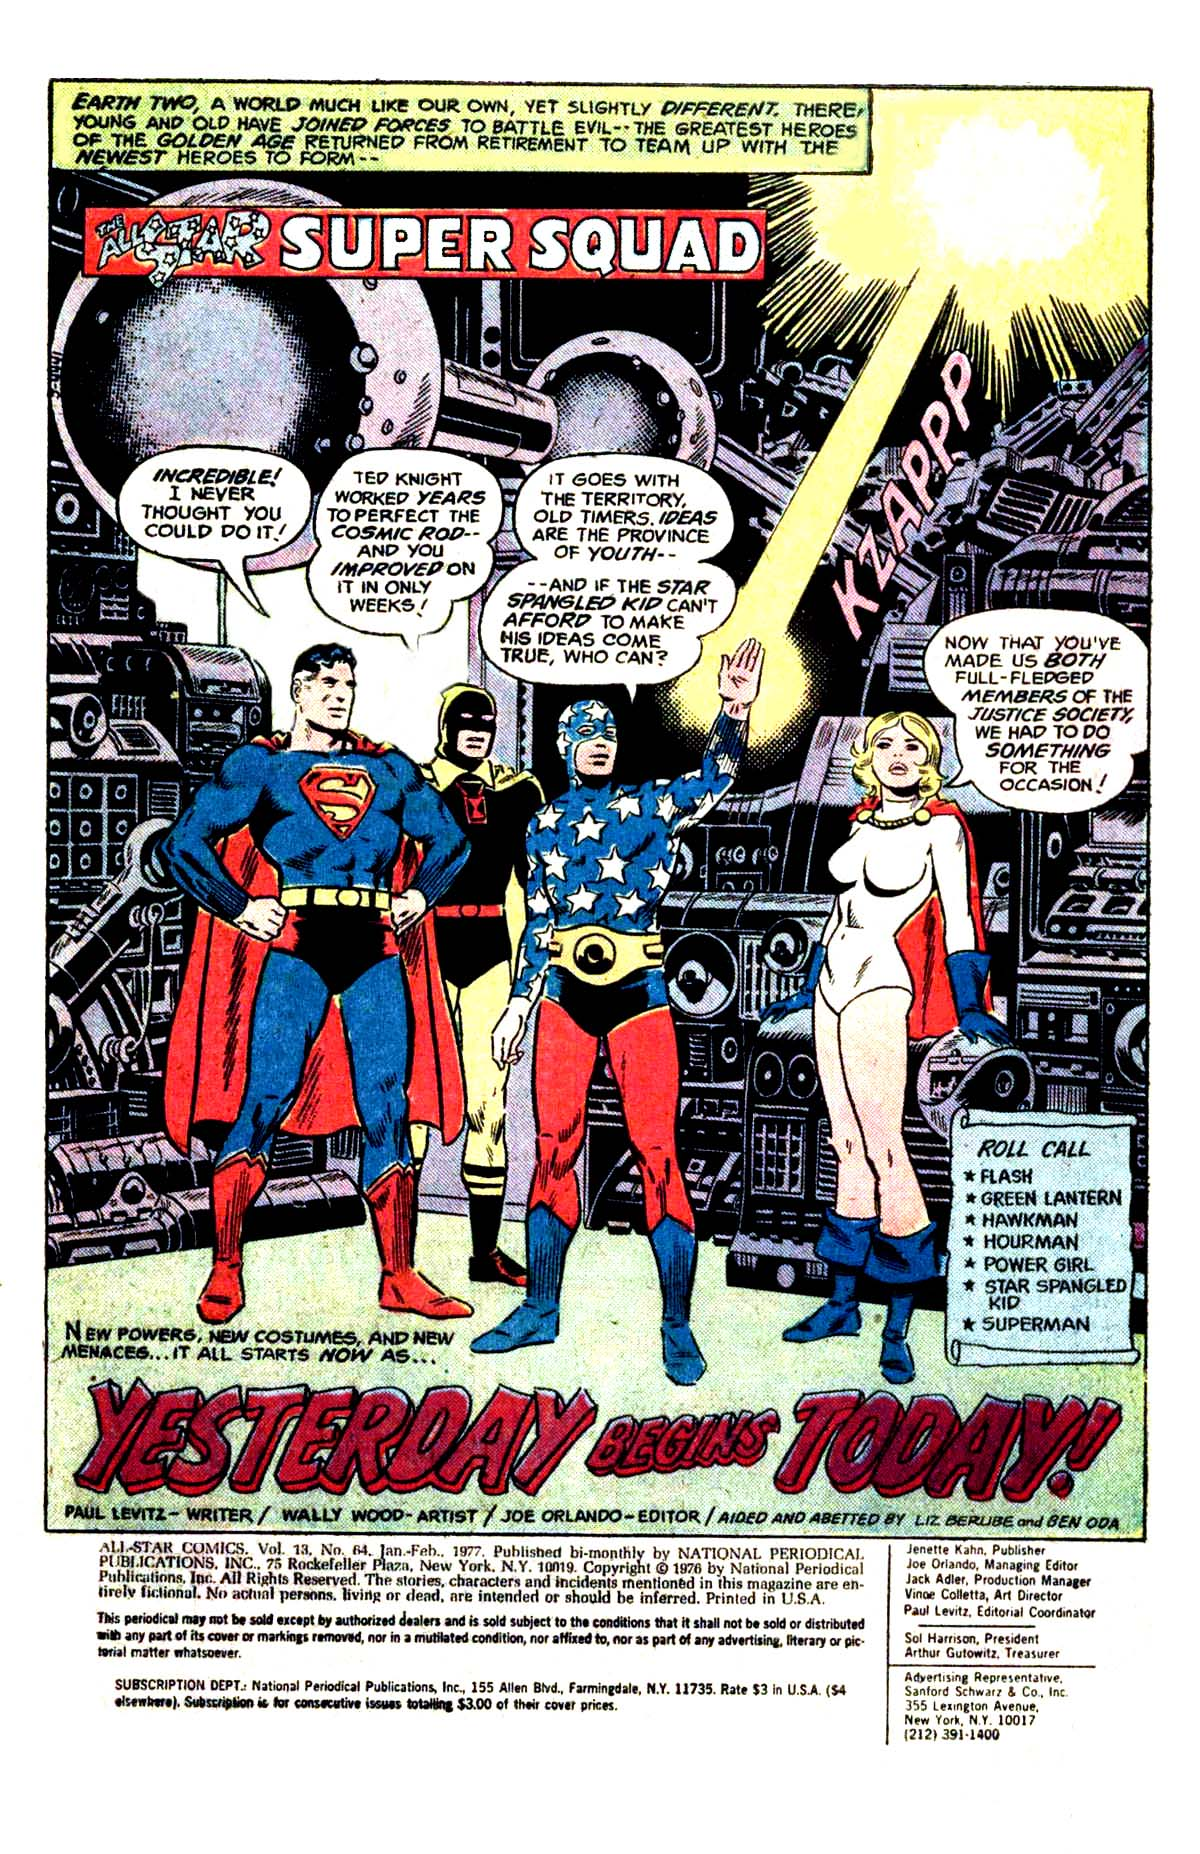 Wood – All Star comics – Yesterday begins Today